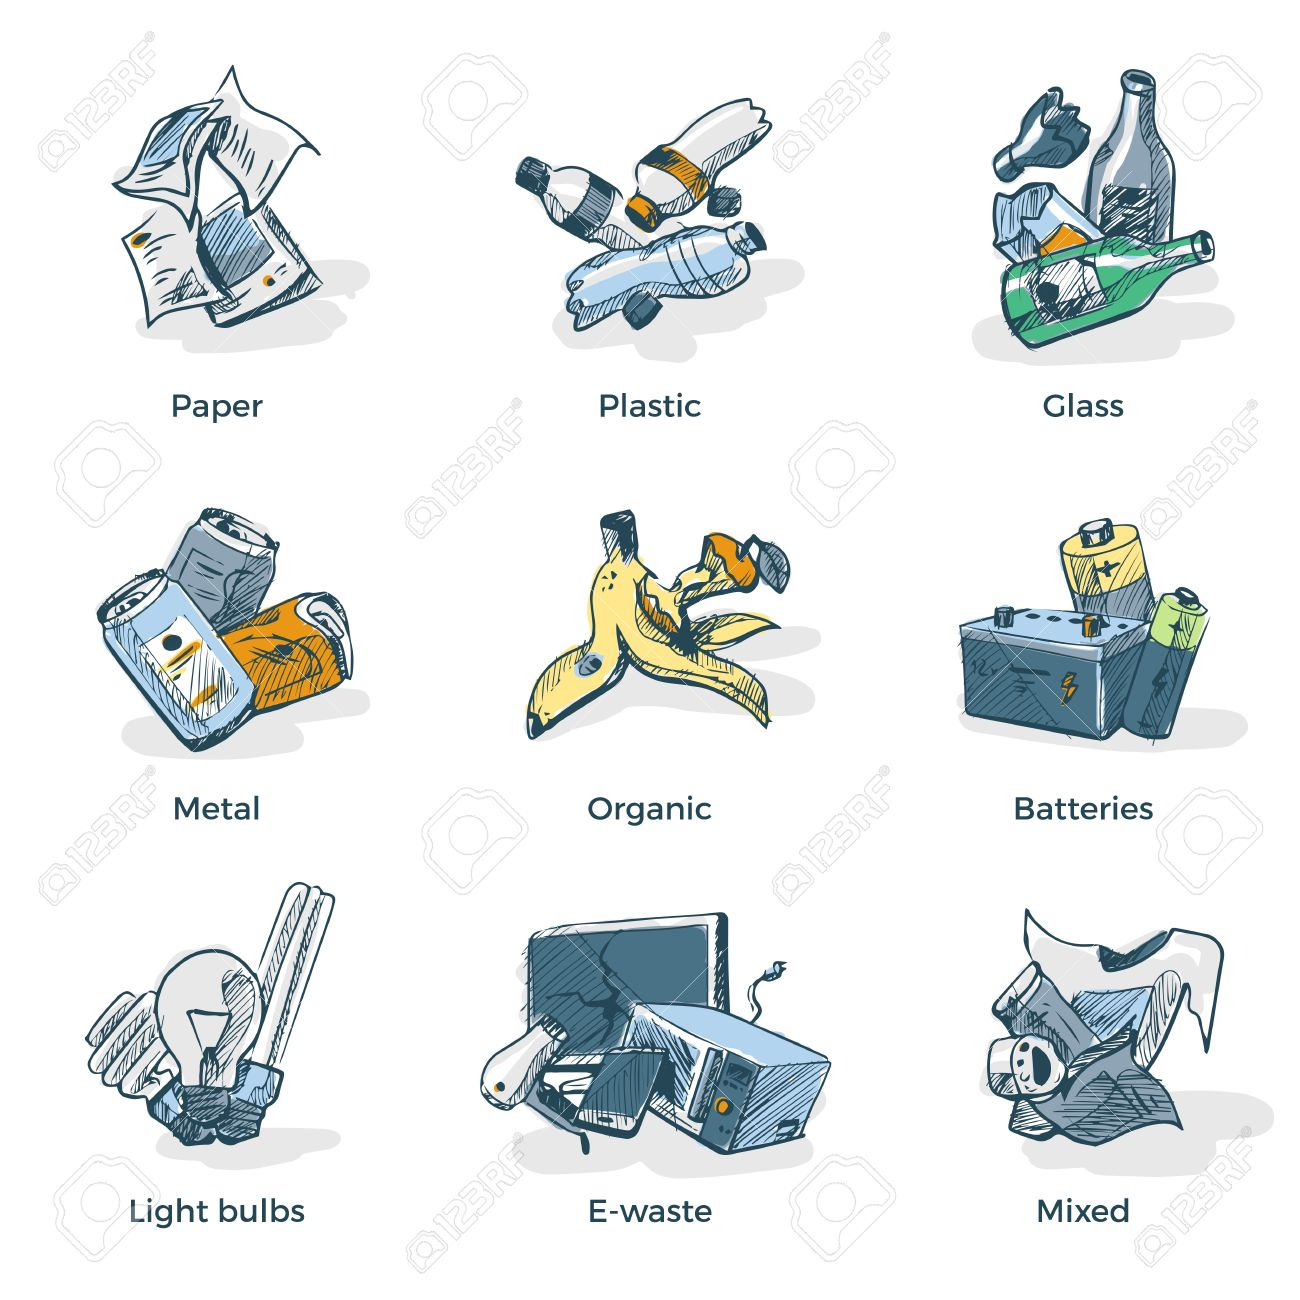 Hand drawn vector illustration sketch of trash categories with organic, paper, plastic, glass, metal, e-waste, batteries, light bulbs and mixed waste. Waste types segregation recycling management concept. - 54031477